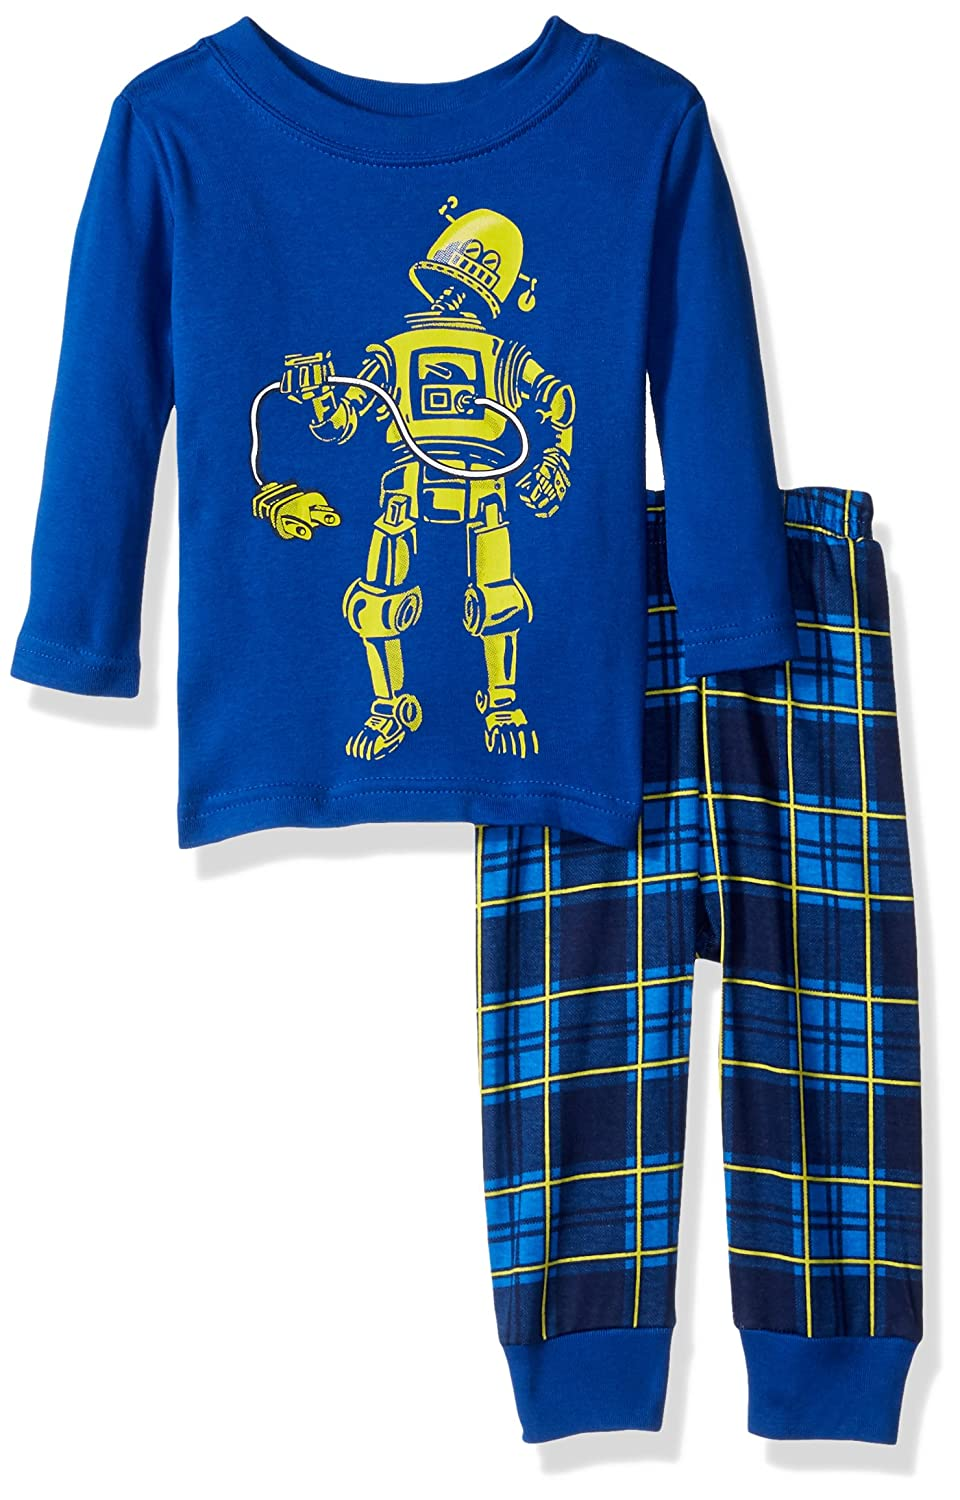 Crazy 8 Big Boy Robot Tight-fit Sleepwear 140161056